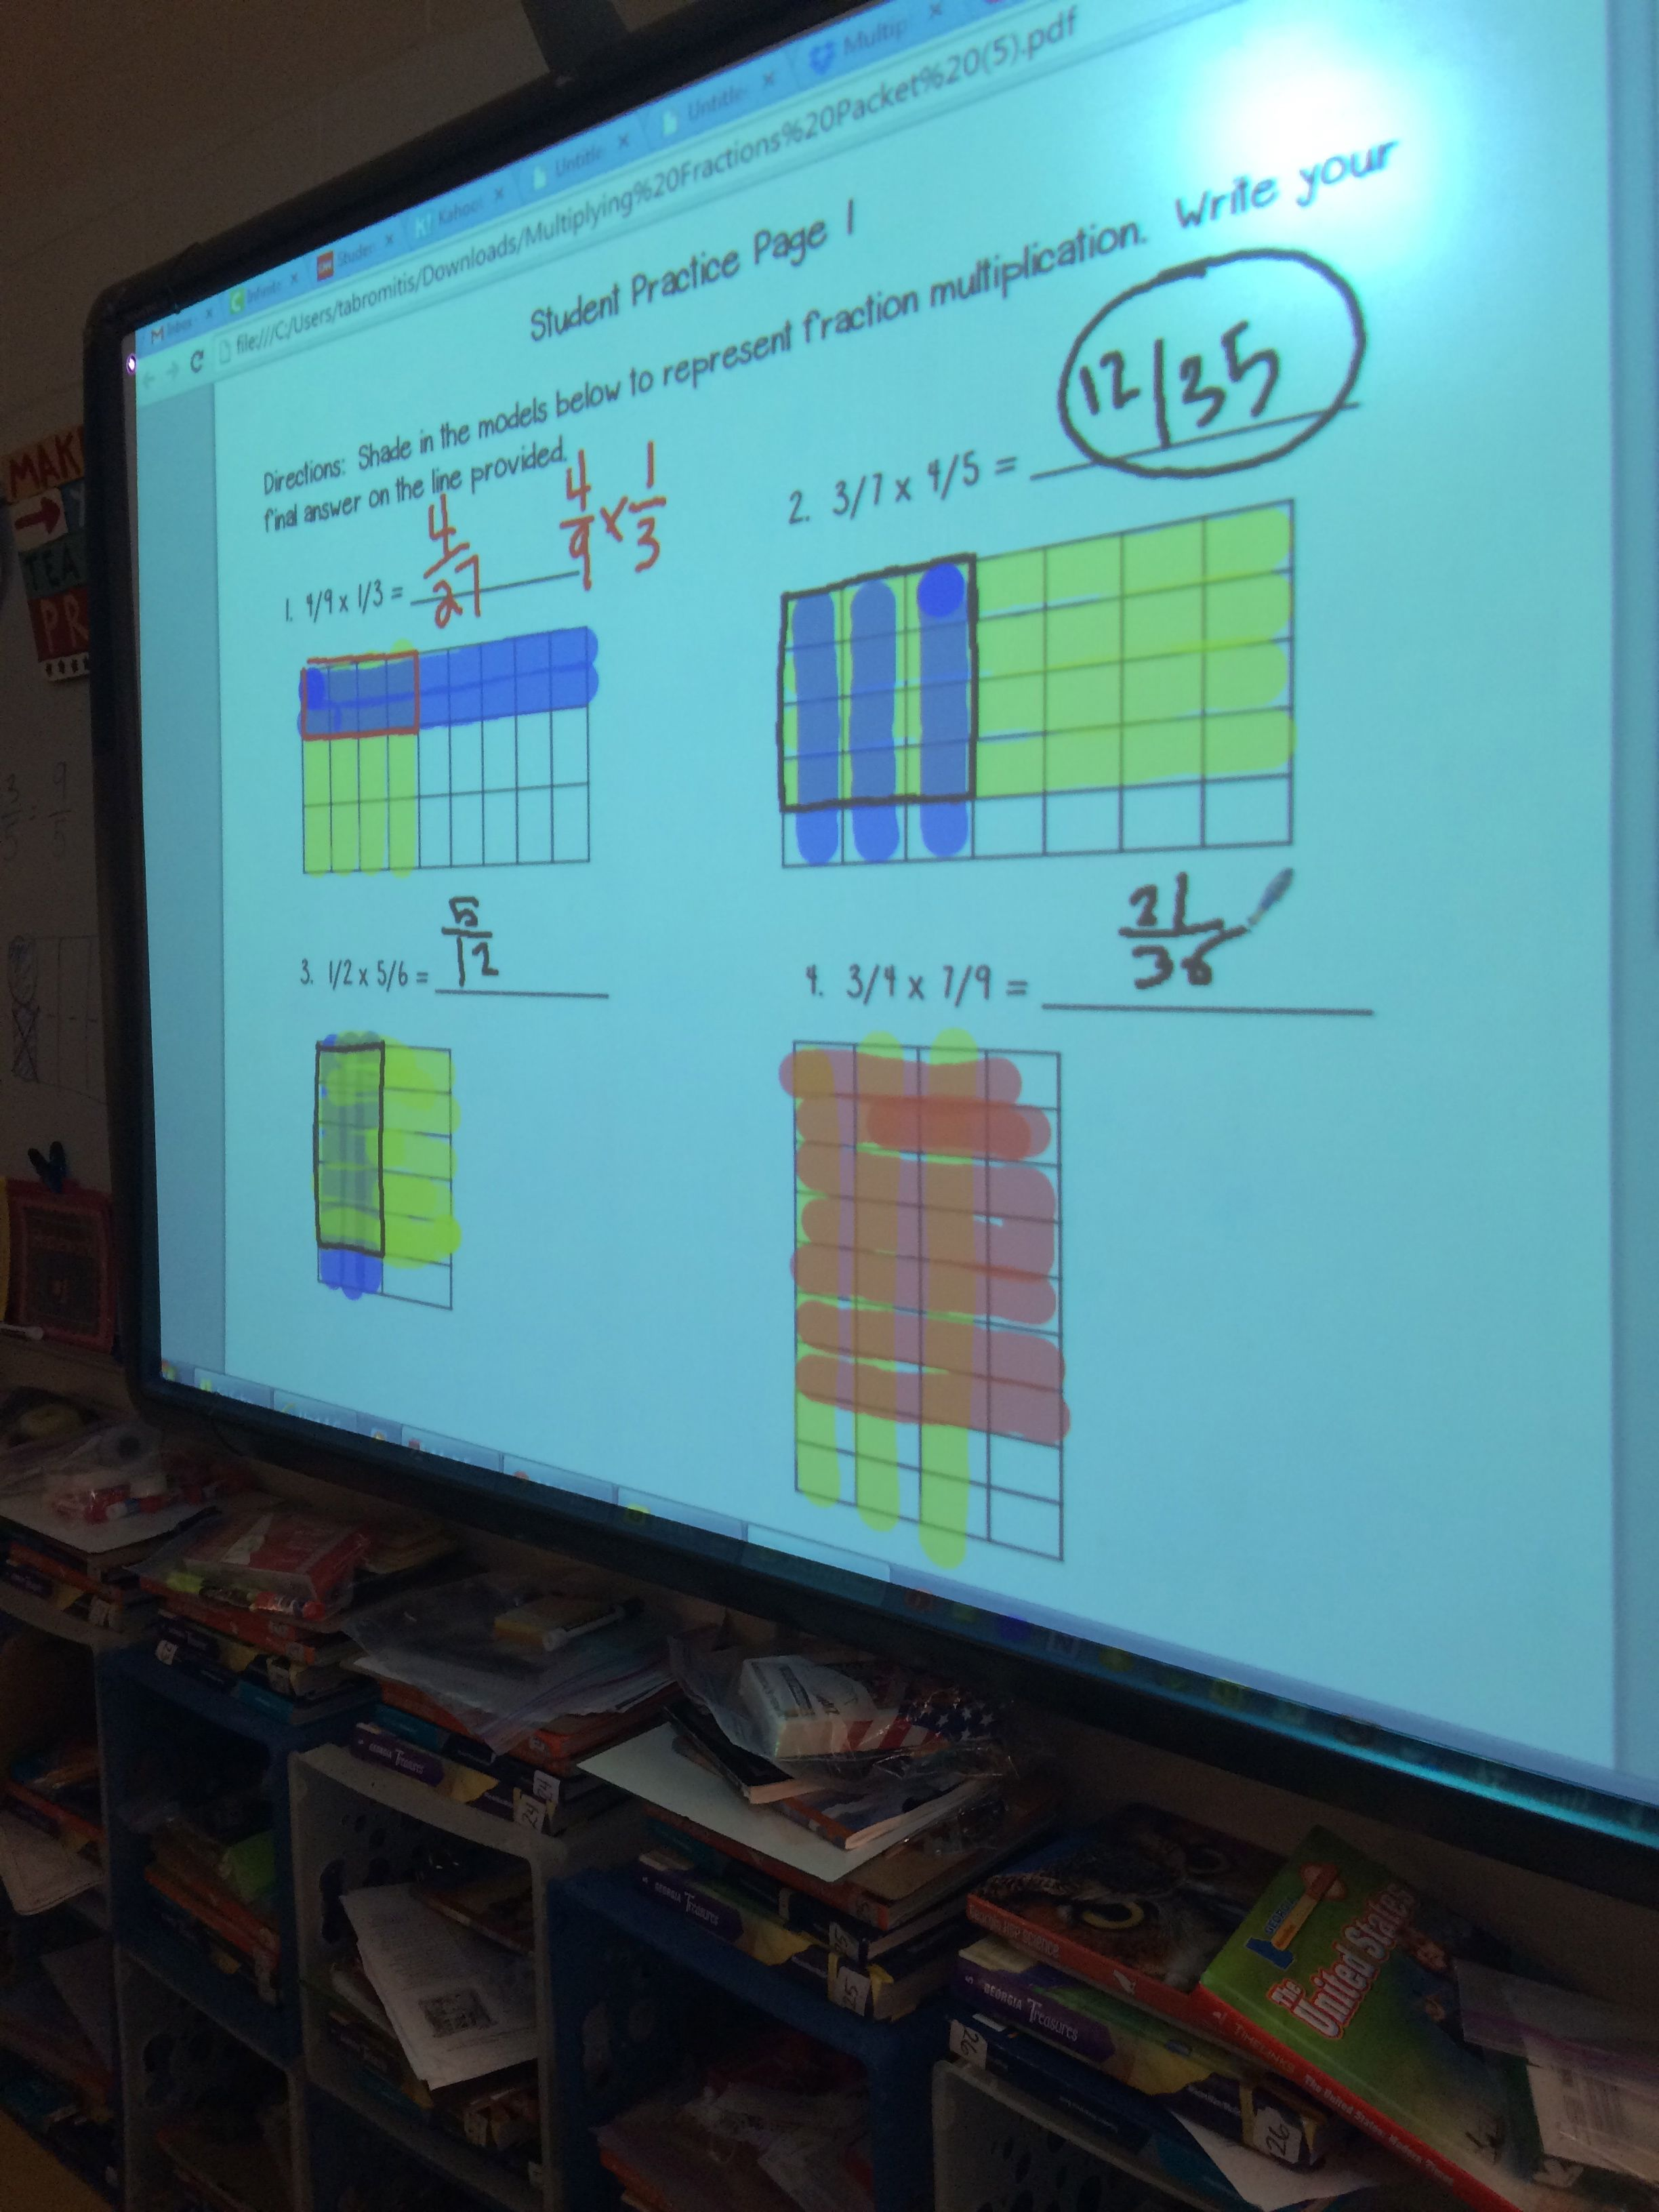 Visual Fraction Models For Multiplication With Images